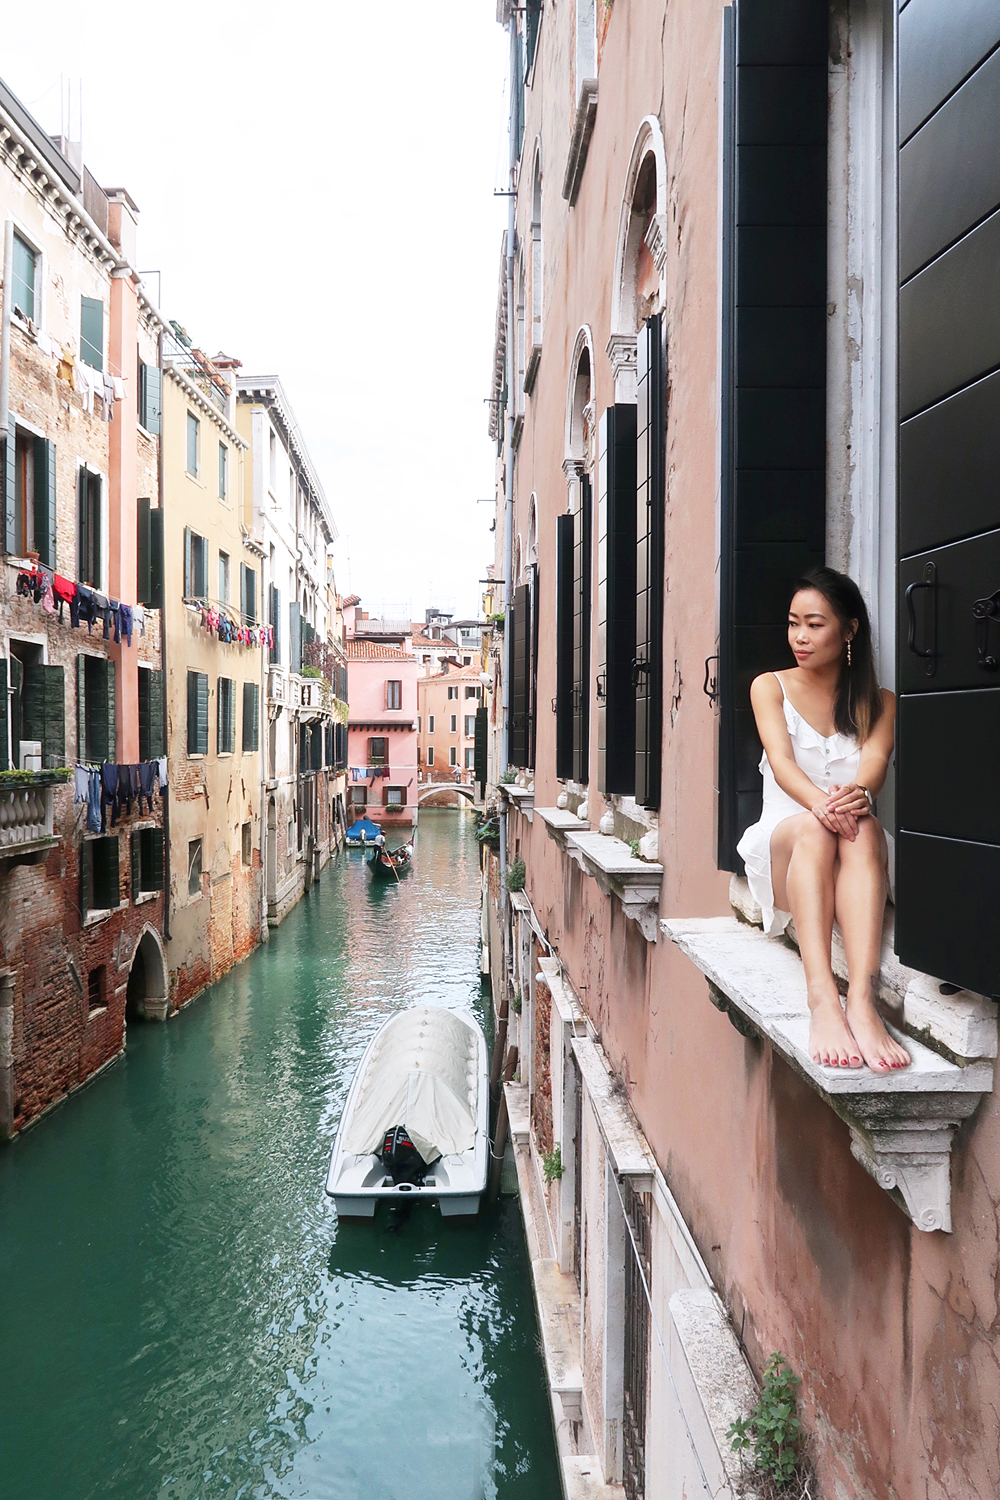 02venice-canal-italy-travel-ootd